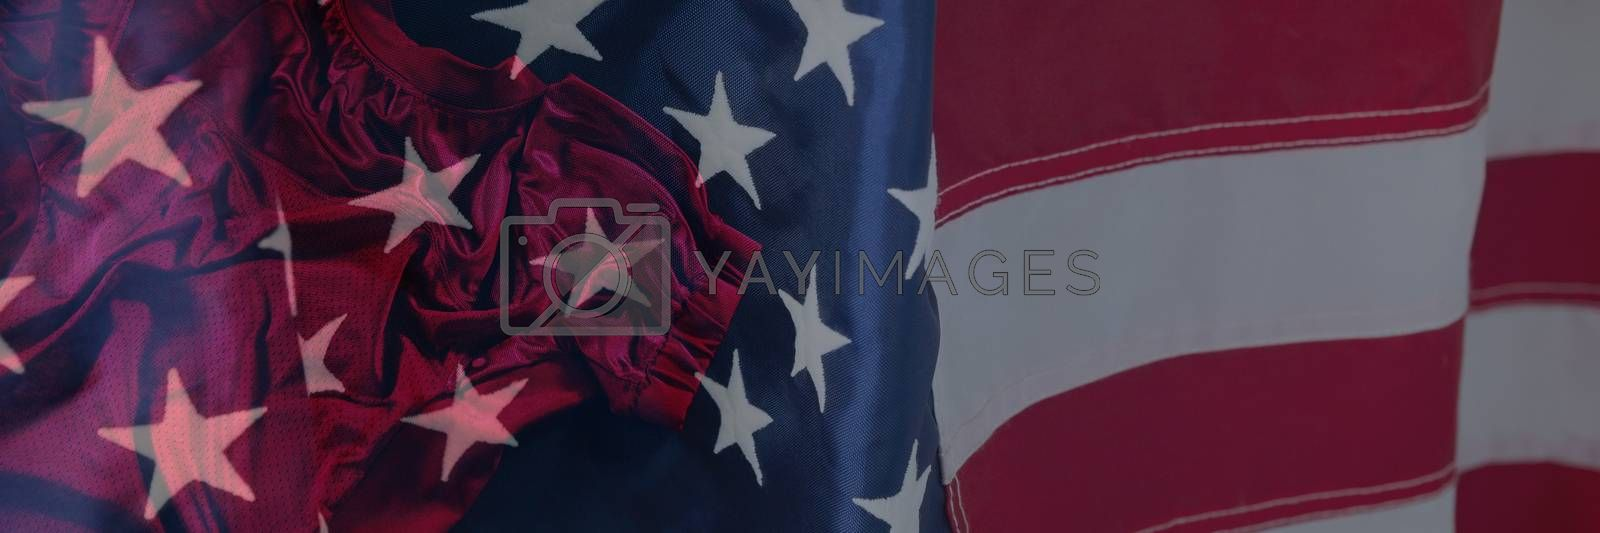 Close-up of an American flag against rugby jersey against black background